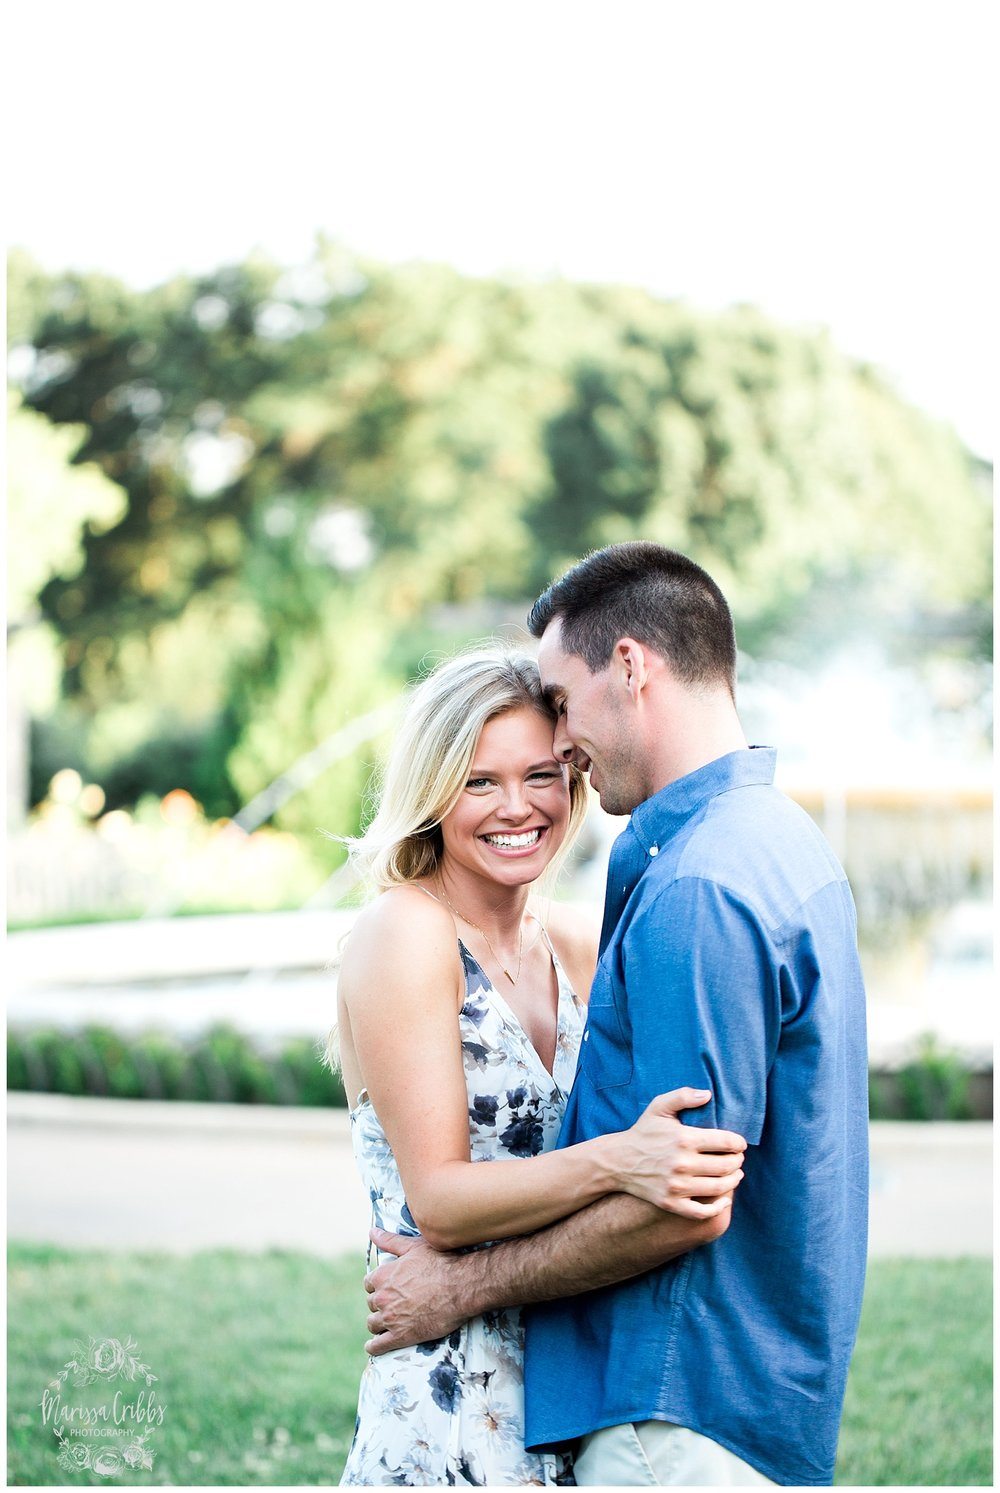 LIZZY & DANE ENGAGEMENT | LOOSE PARK ENGAGEMENT | MARISSA CRIBBS PHOTOGRAPHY_2326.jpg